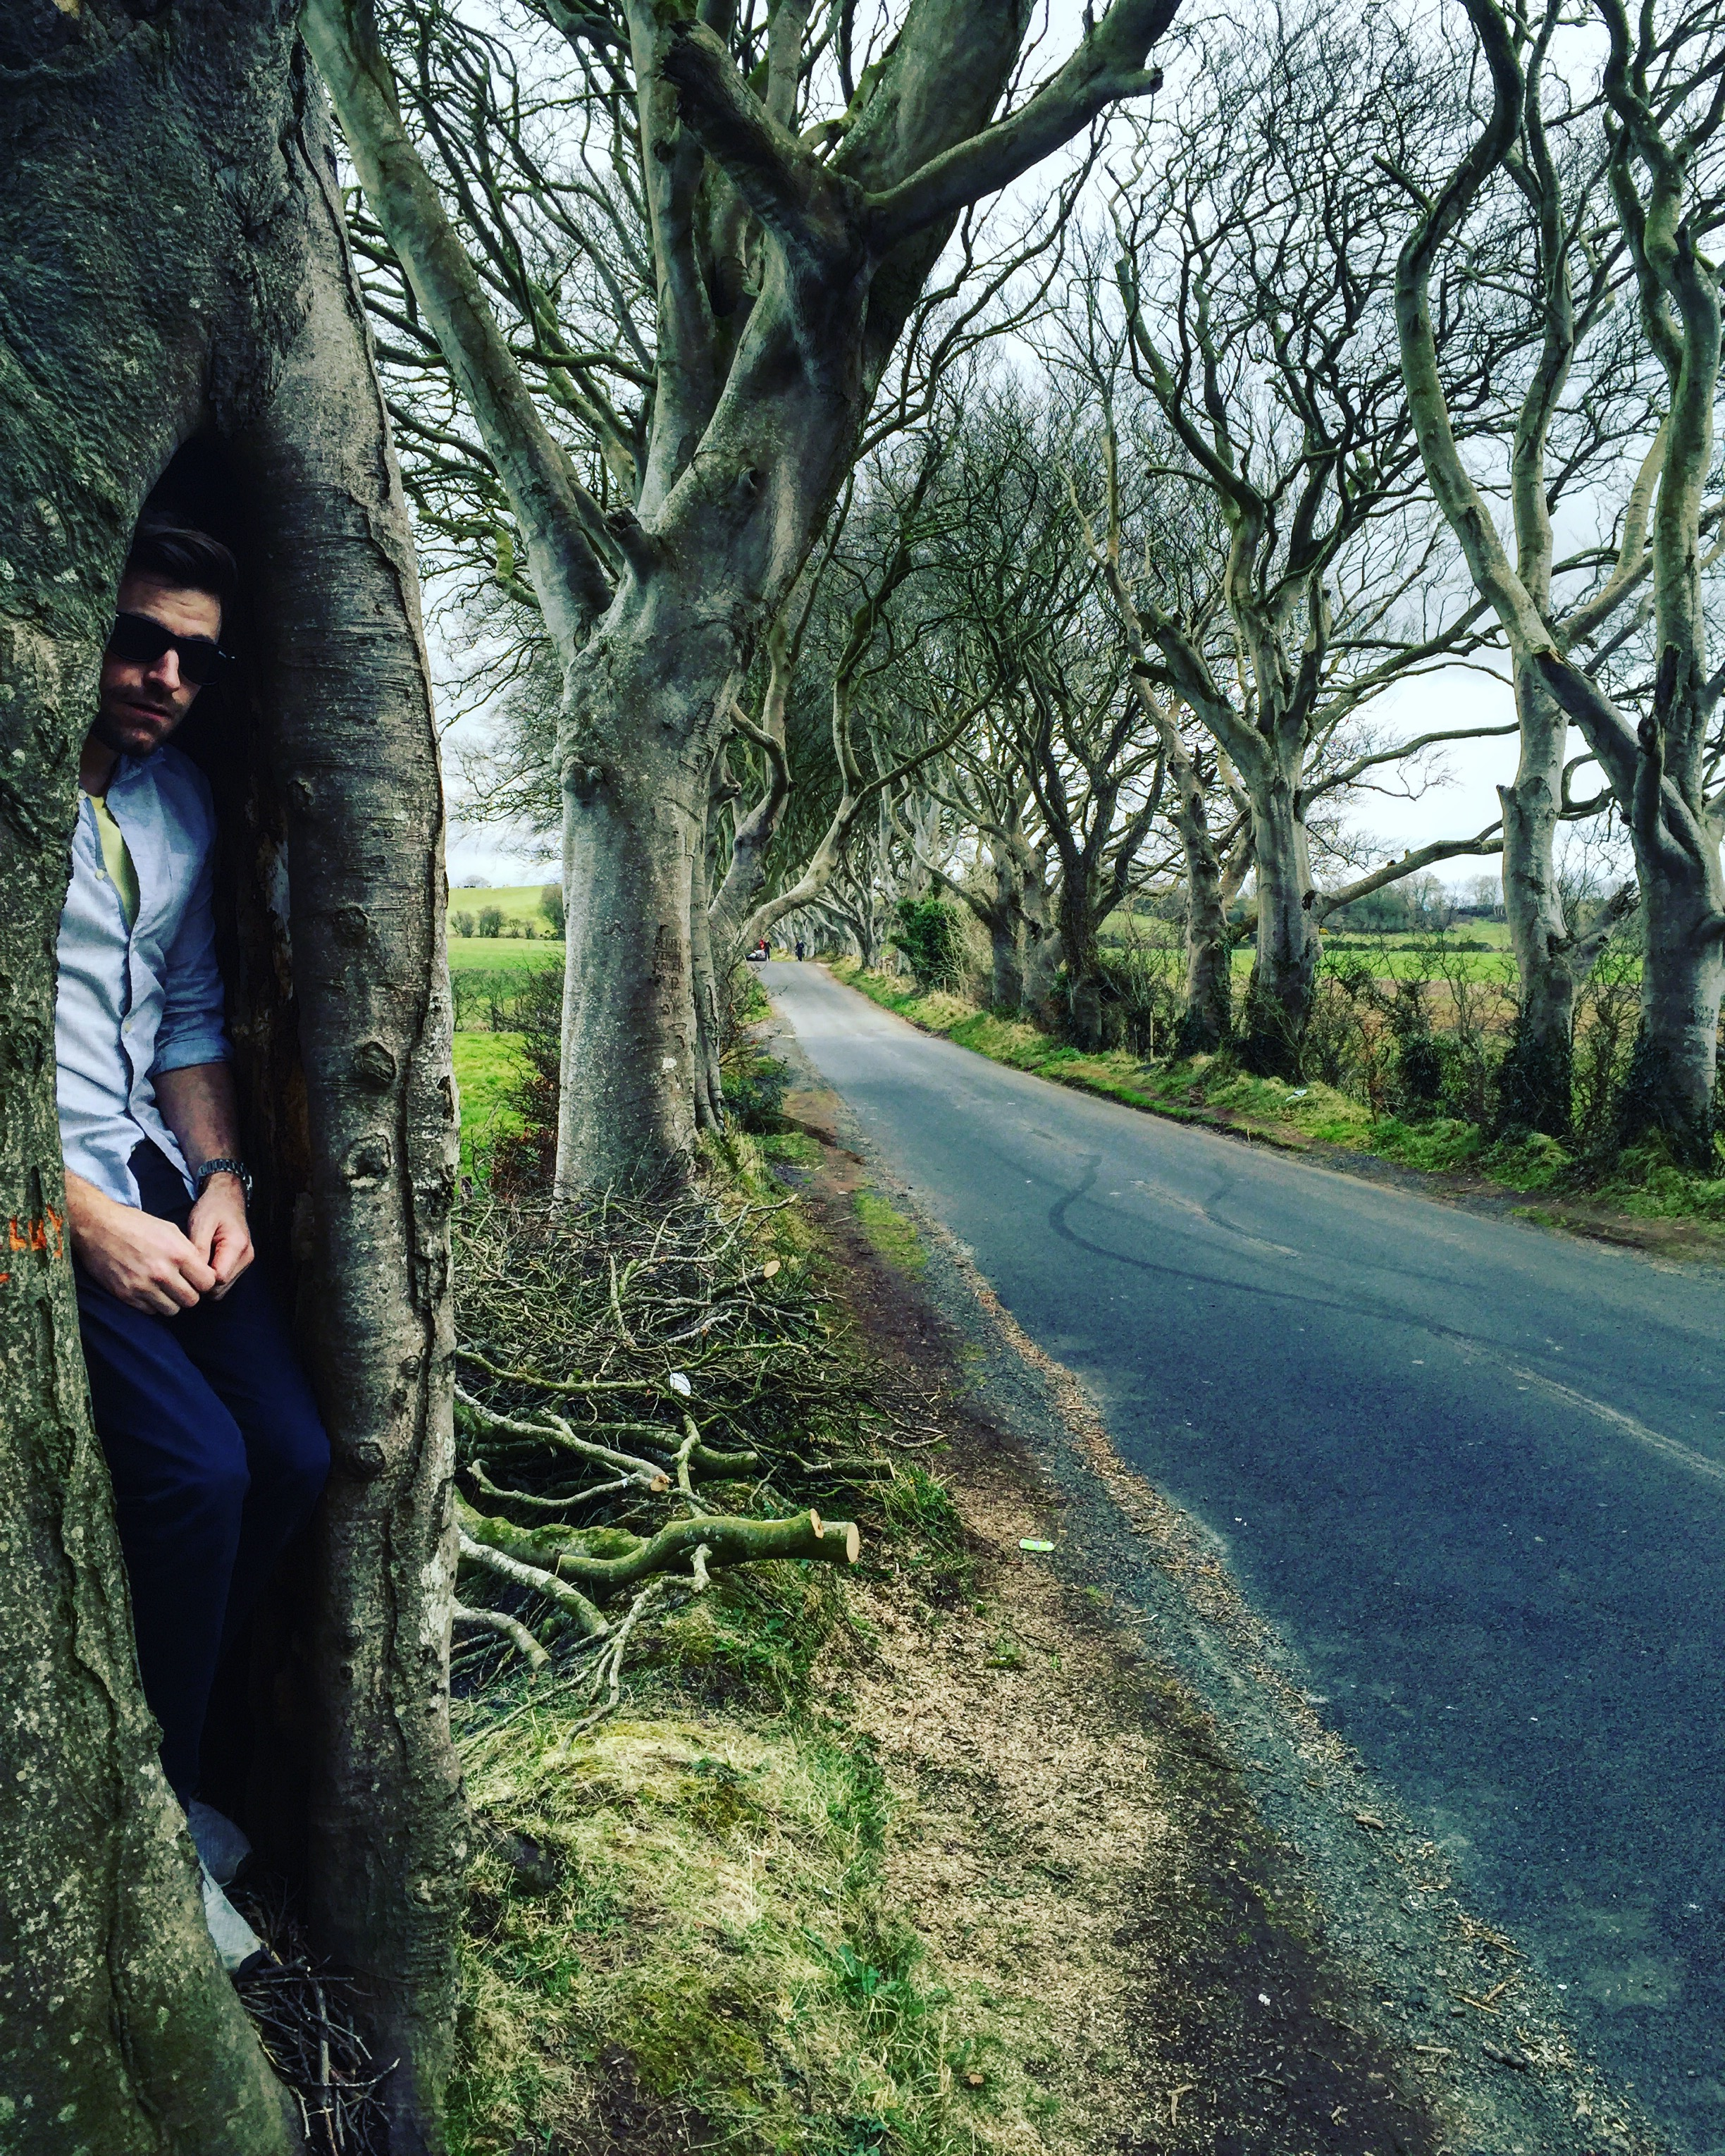 funny_inside_dark_hedges_antrim_roadtrip_ni_explorer_niexplorer_northern_ireland_blog.jpg